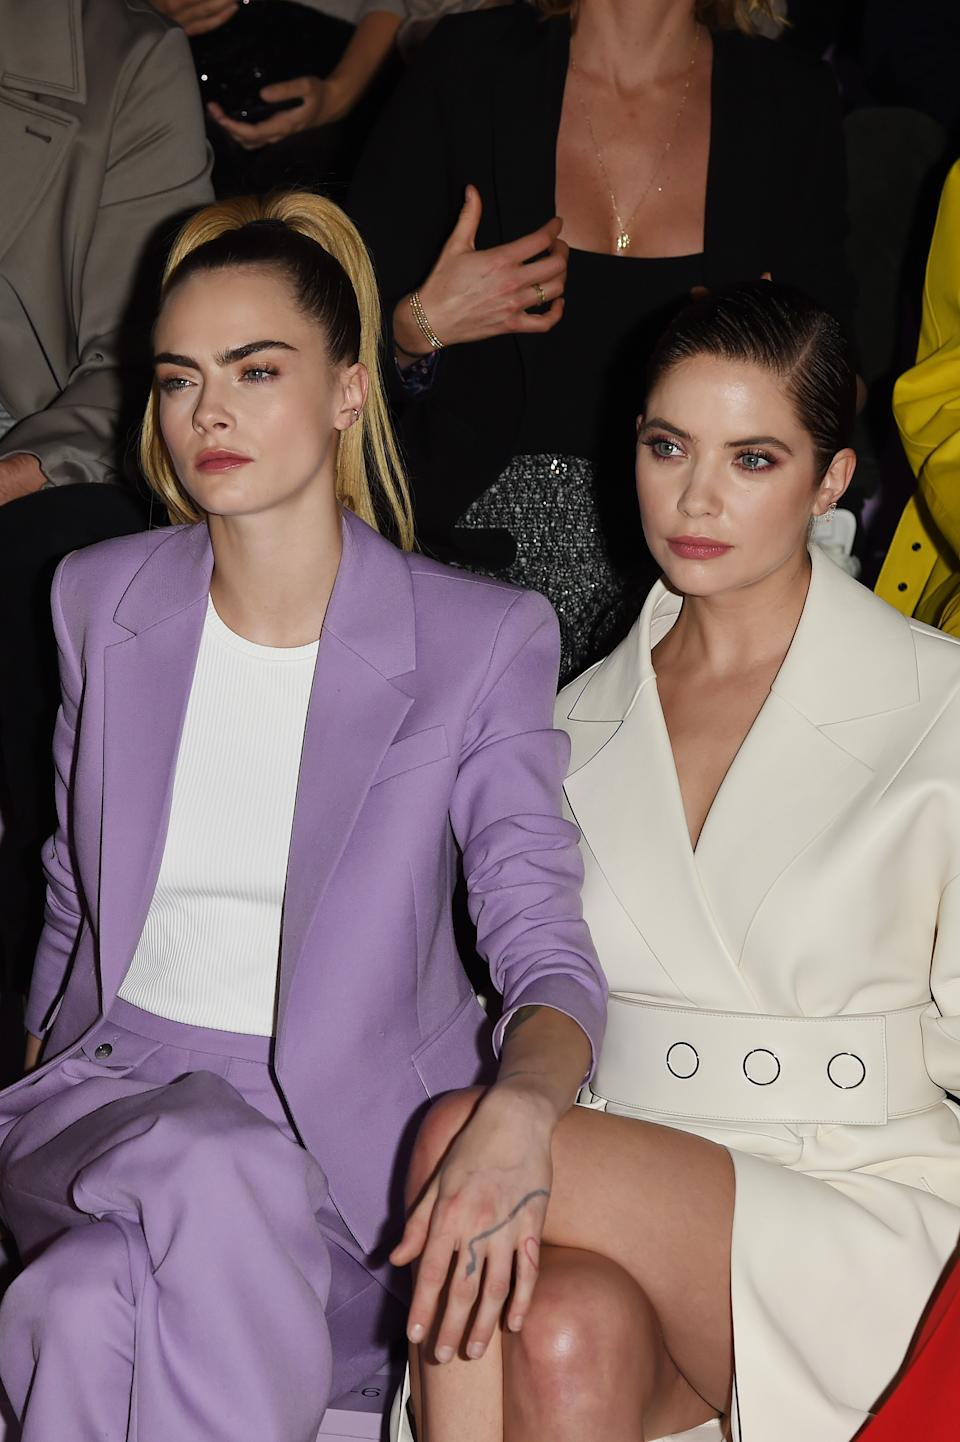 Cara Delevingne and Ashley Benson attend the Boss fashion show on February 23, 2020 in Milan, Italy. (Photo by Stefania D'Alessandro/Getty Images)